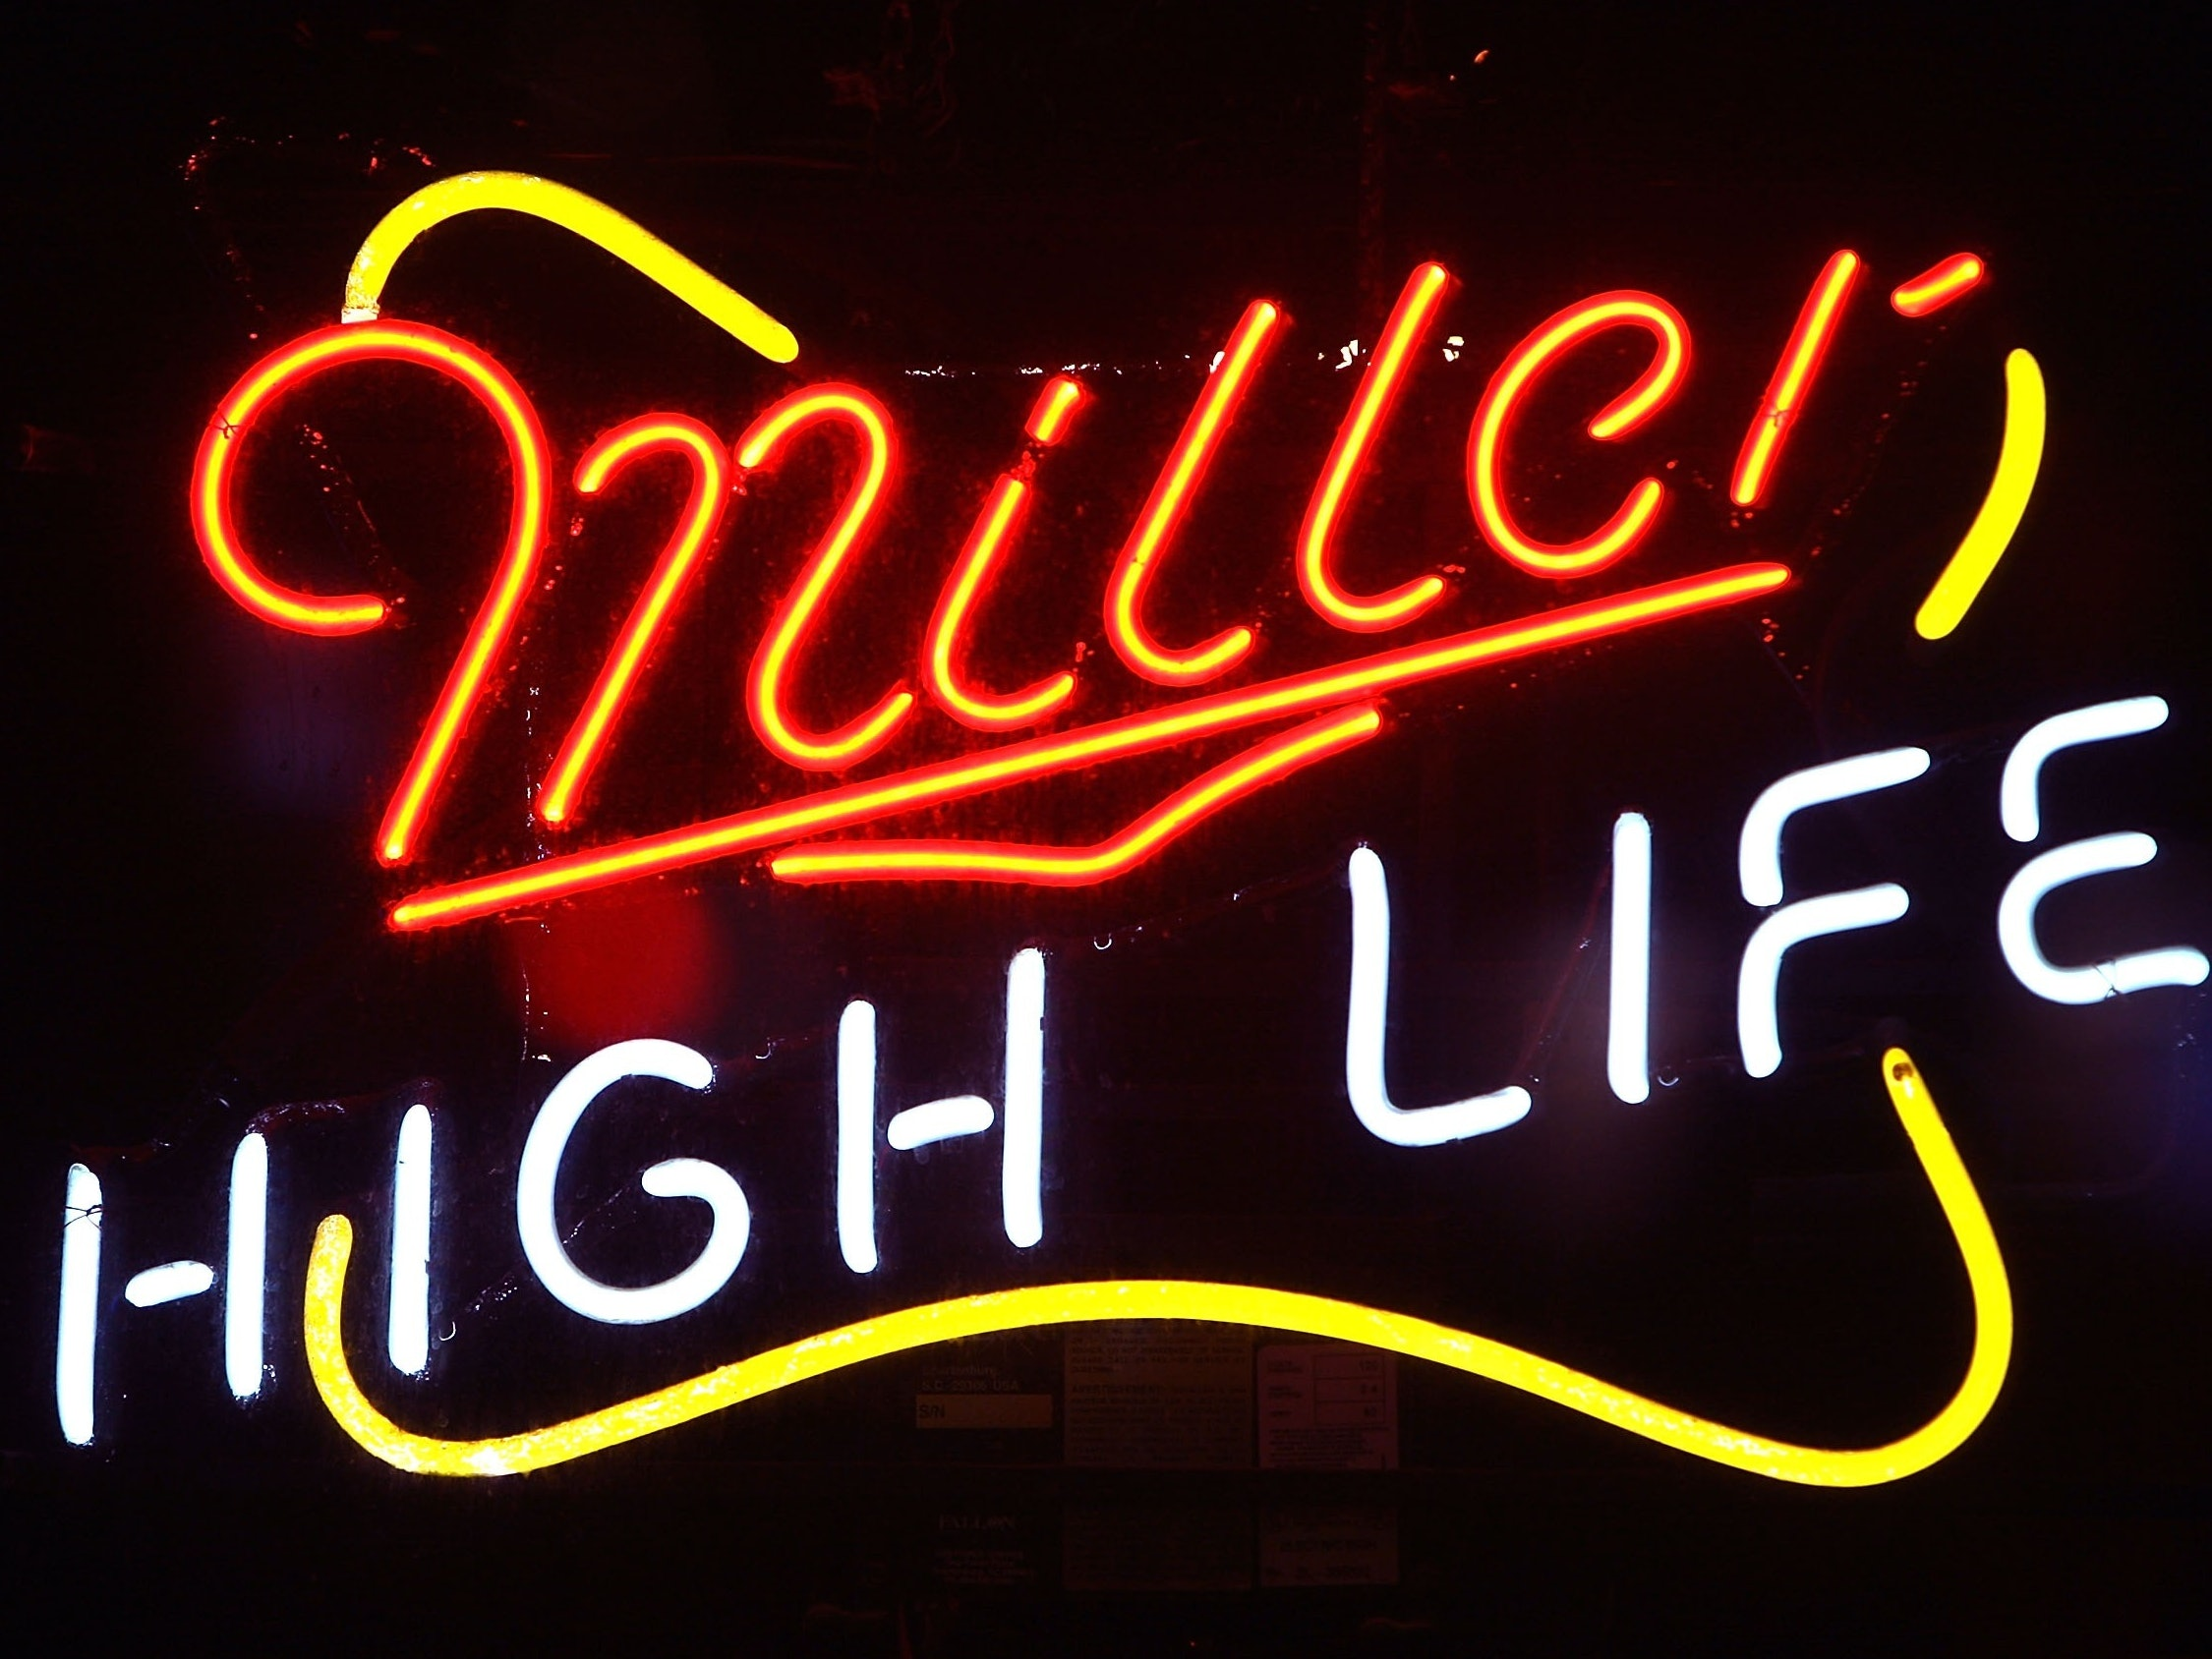 Miller High Life Could Be Canned From the Fountain of Youth